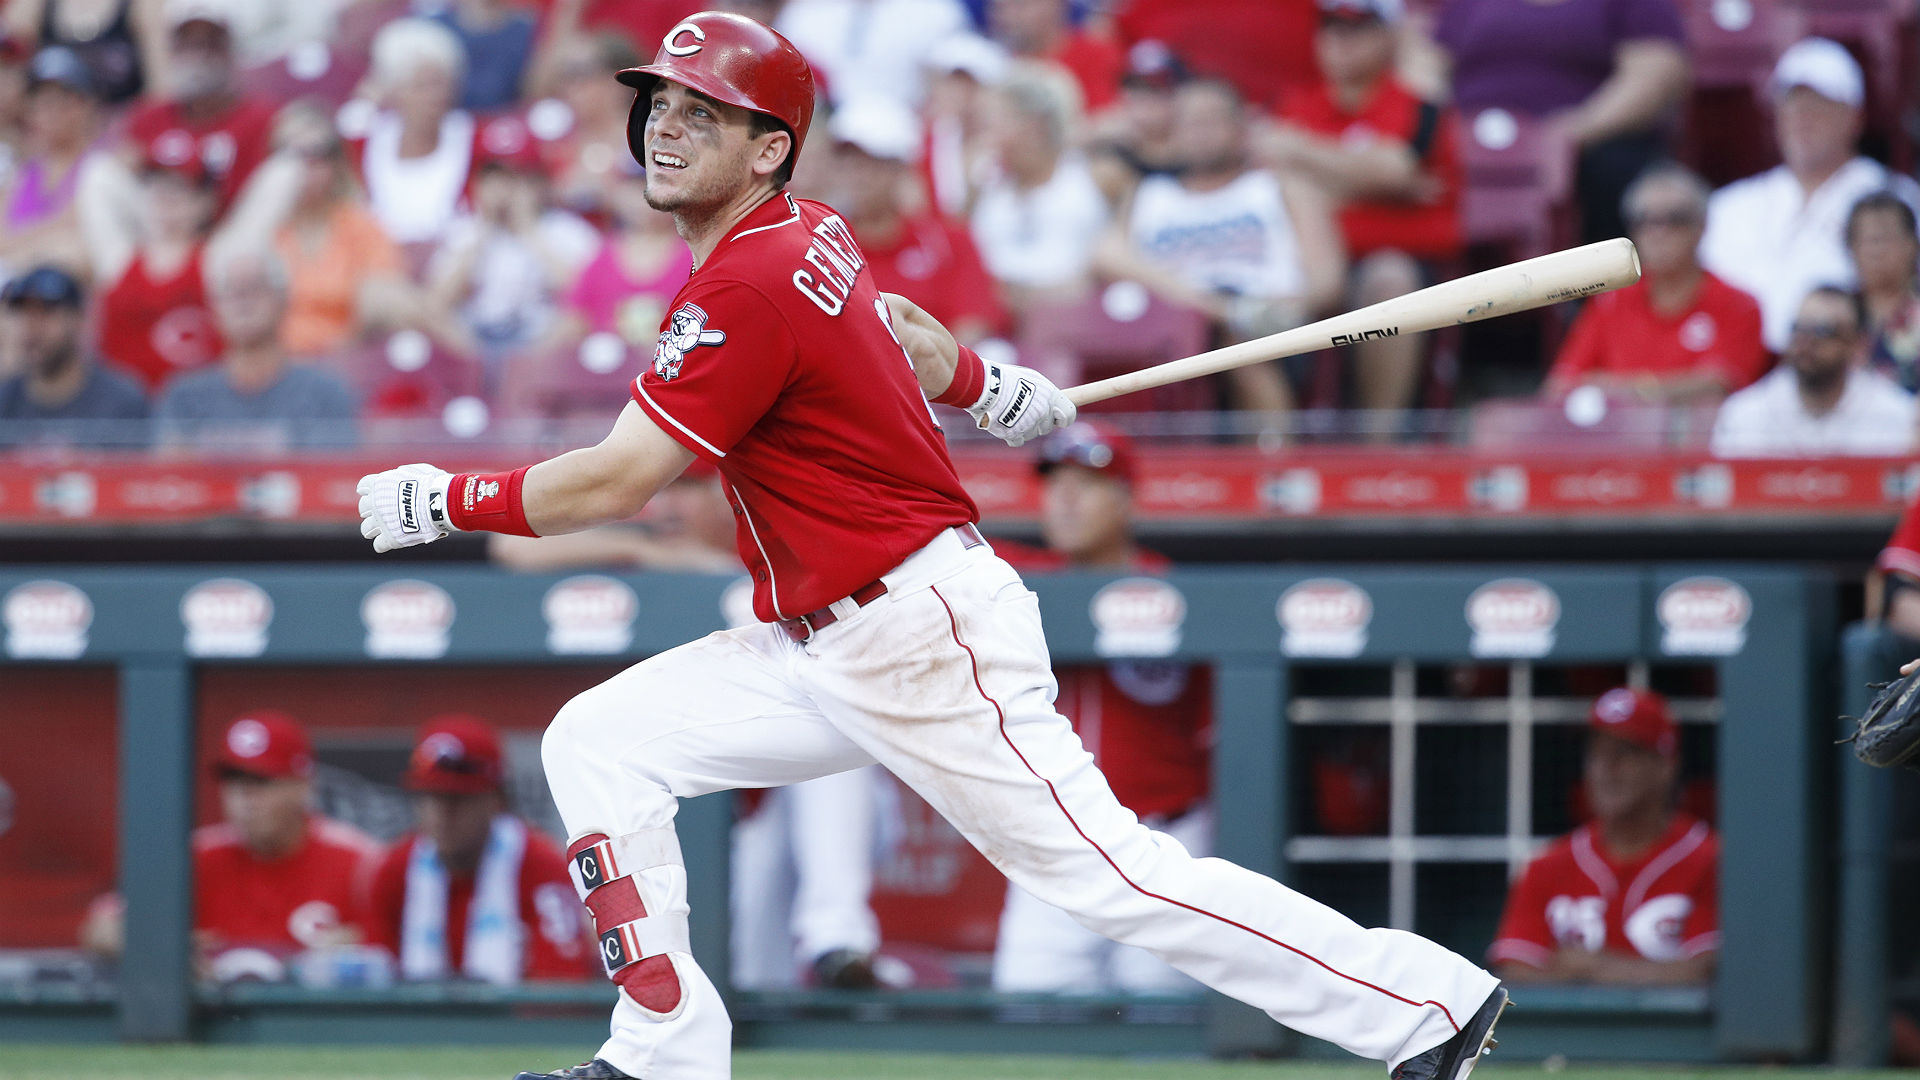 Scooter Gennett unhappy Reds haven't gotten back to him about extension